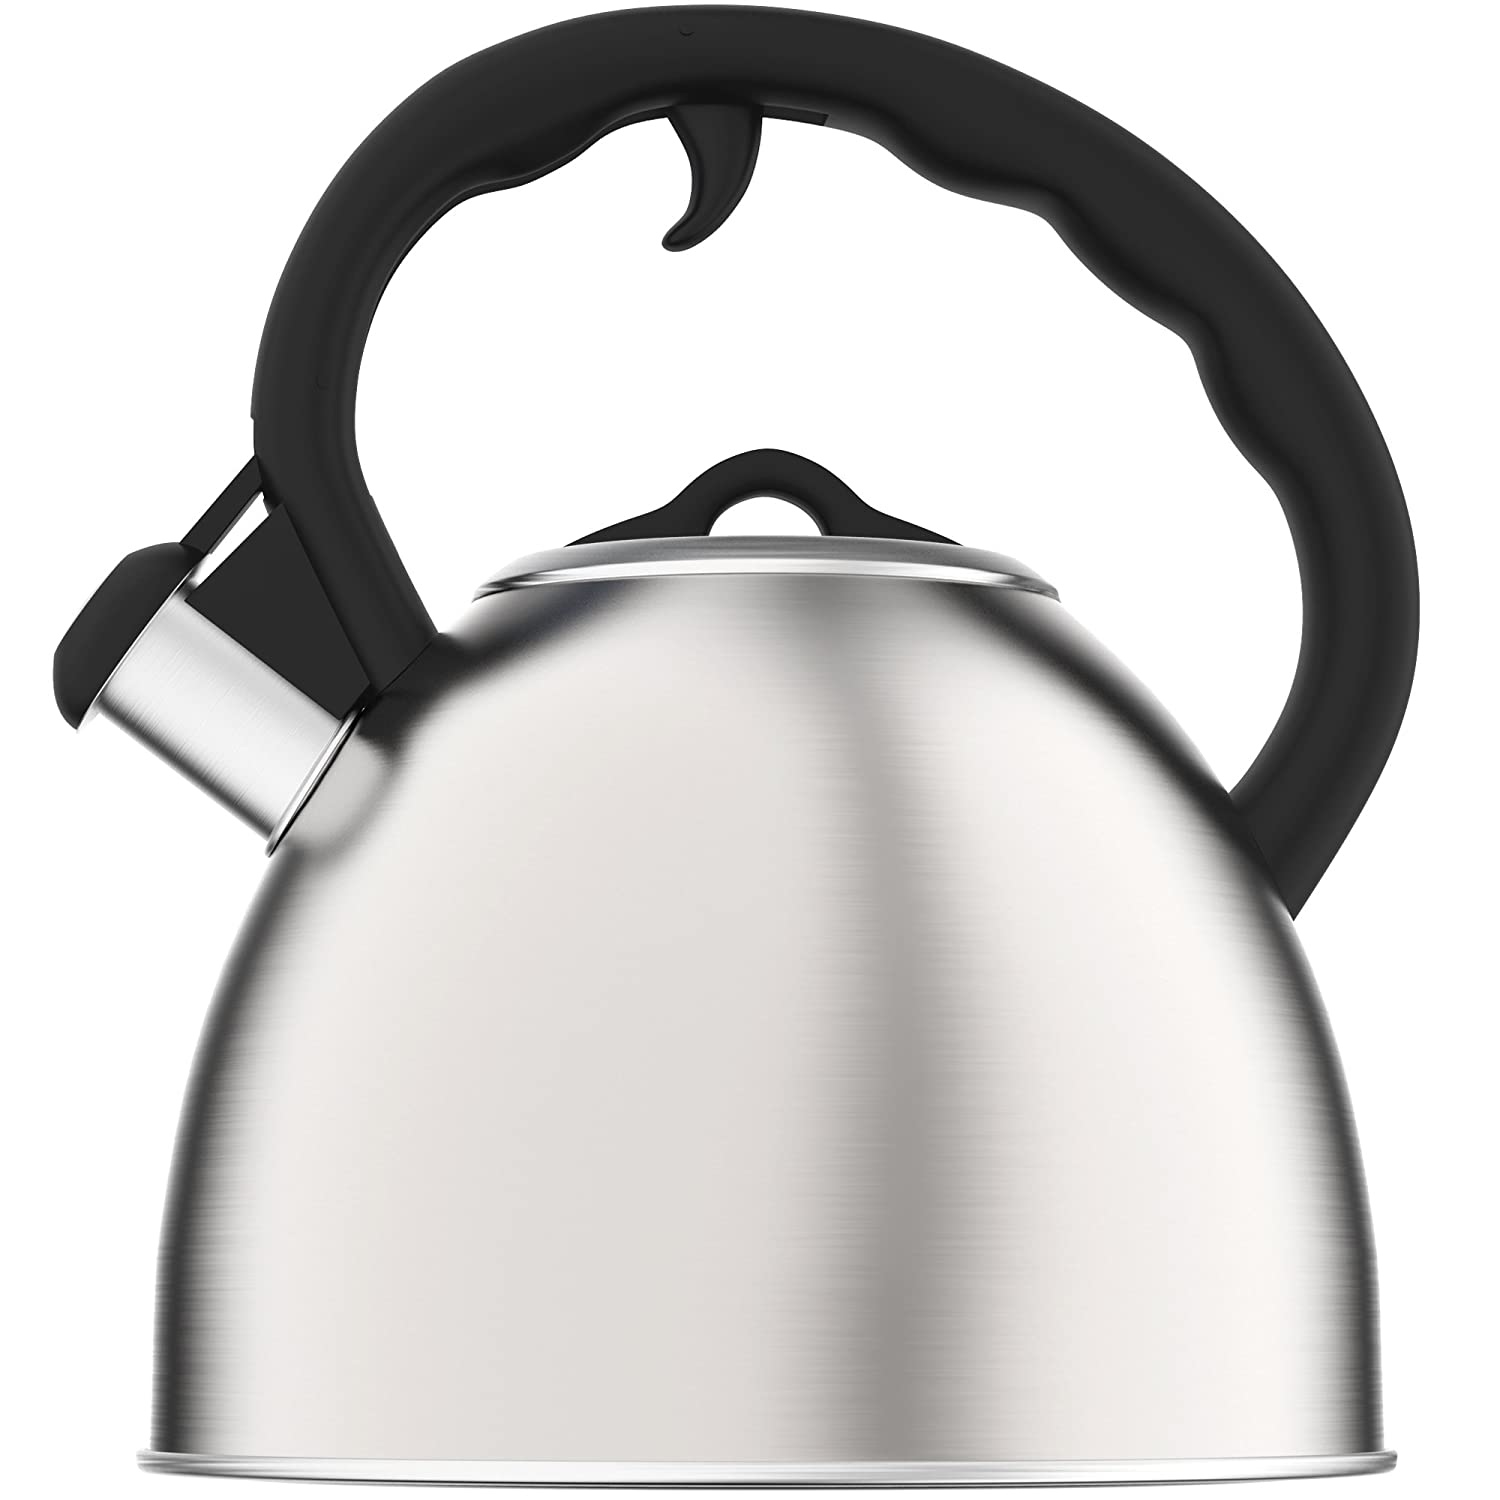 amazoncom vremi whistling tea kettle for stovetop   quart tea  - amazoncom vremi whistling tea kettle for stovetop   quart tea potstainless steel tea kettle for electric or gas stove top  cool cute moderntea kettle